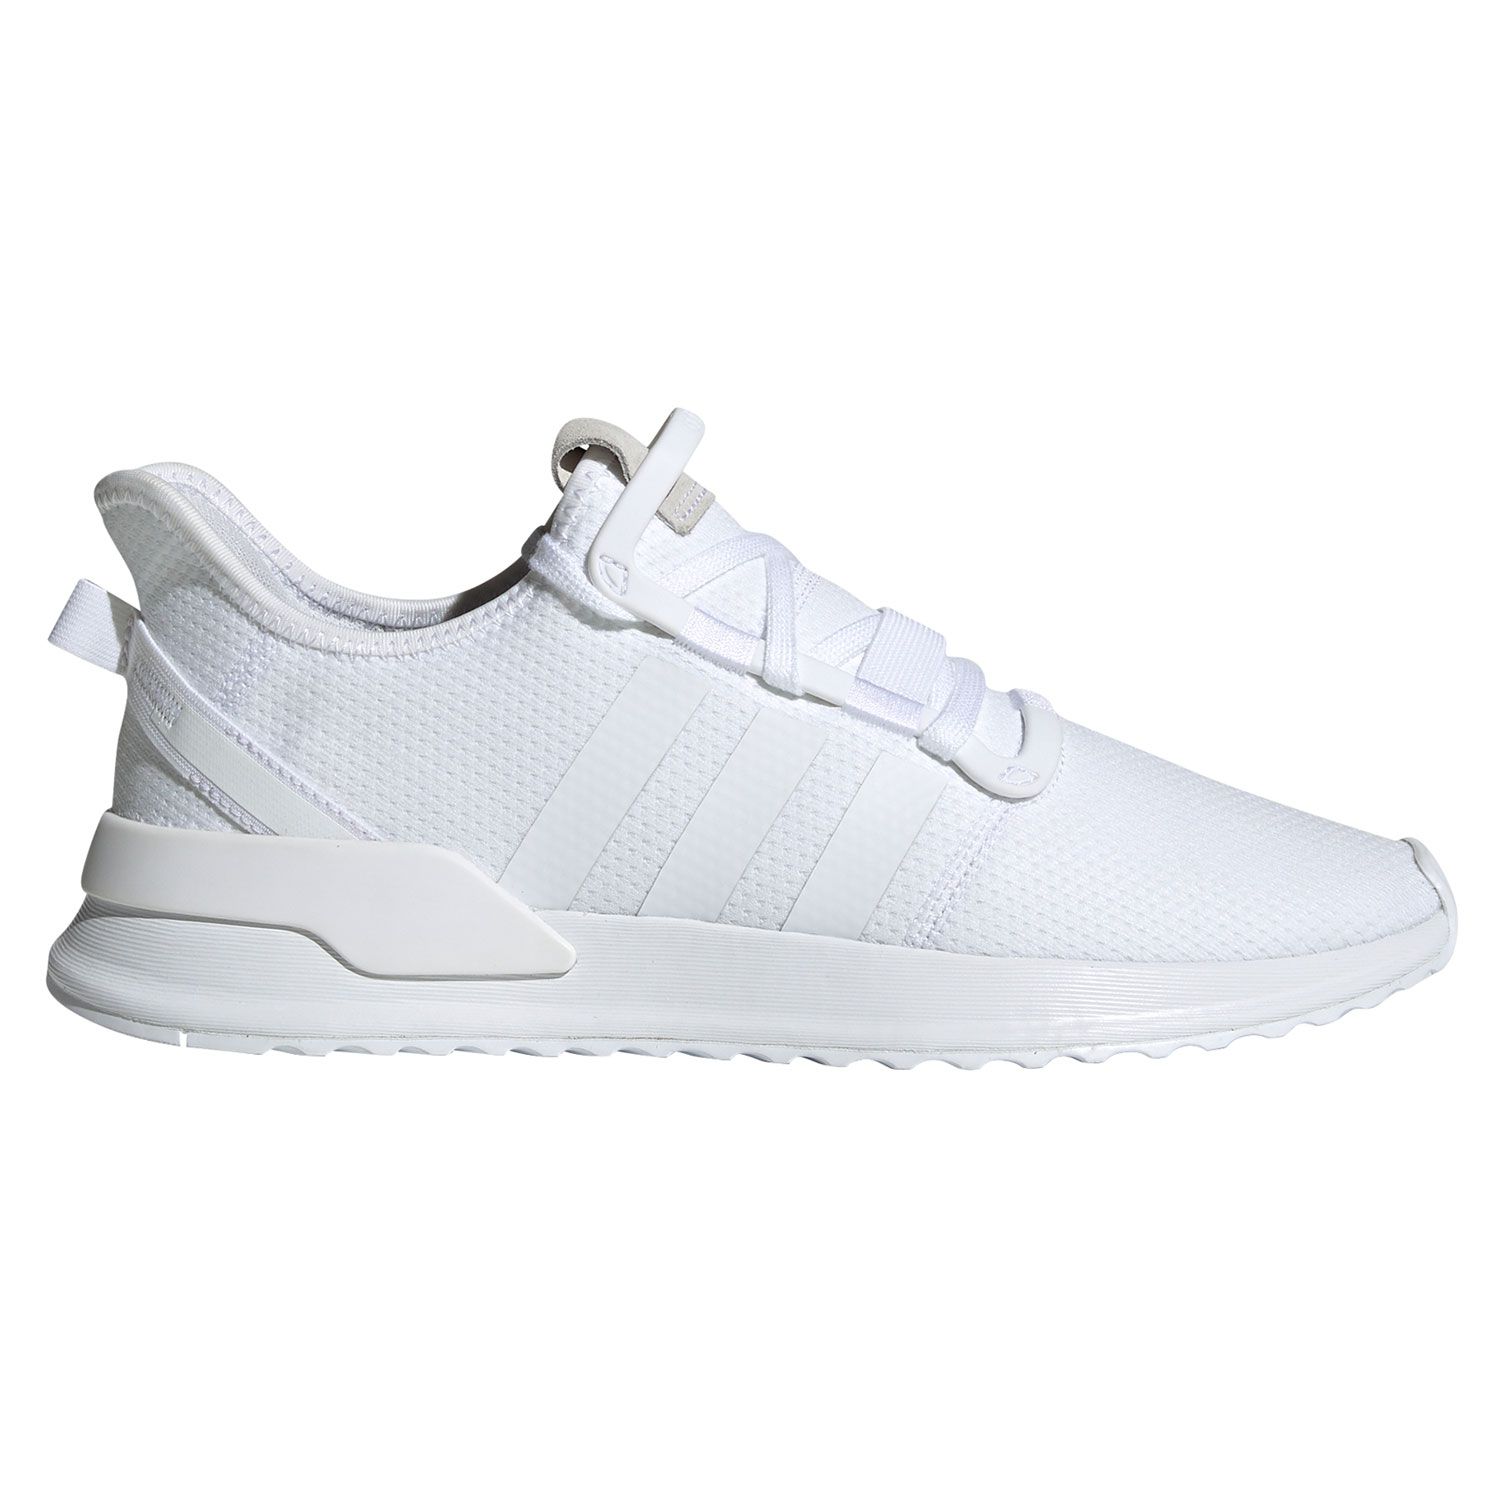 adidas Originals U_Path Run Herren Sneaker weiß G27637